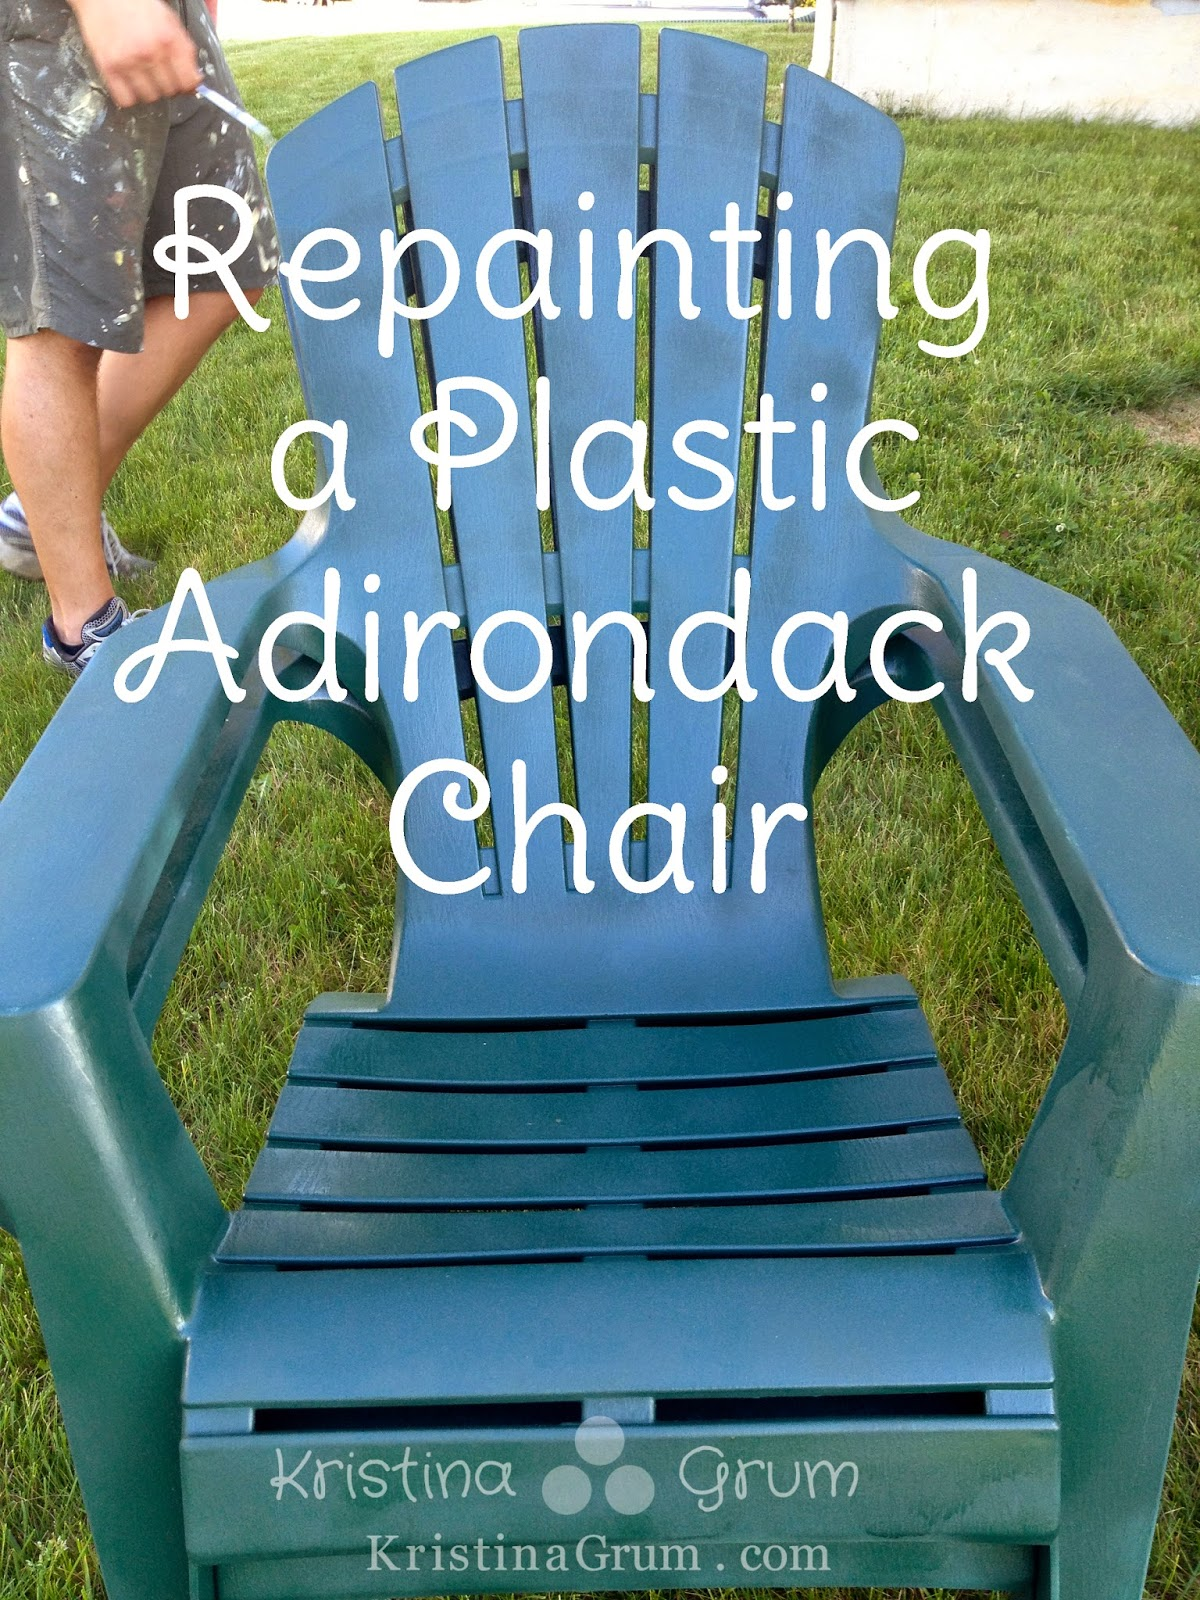 In The Spring We Were Getting Ready To Put Our Plastic Adirondack Chairs  Out In The Yard After Being Put Away For The Winter. As We Pulled Them Out,  ...